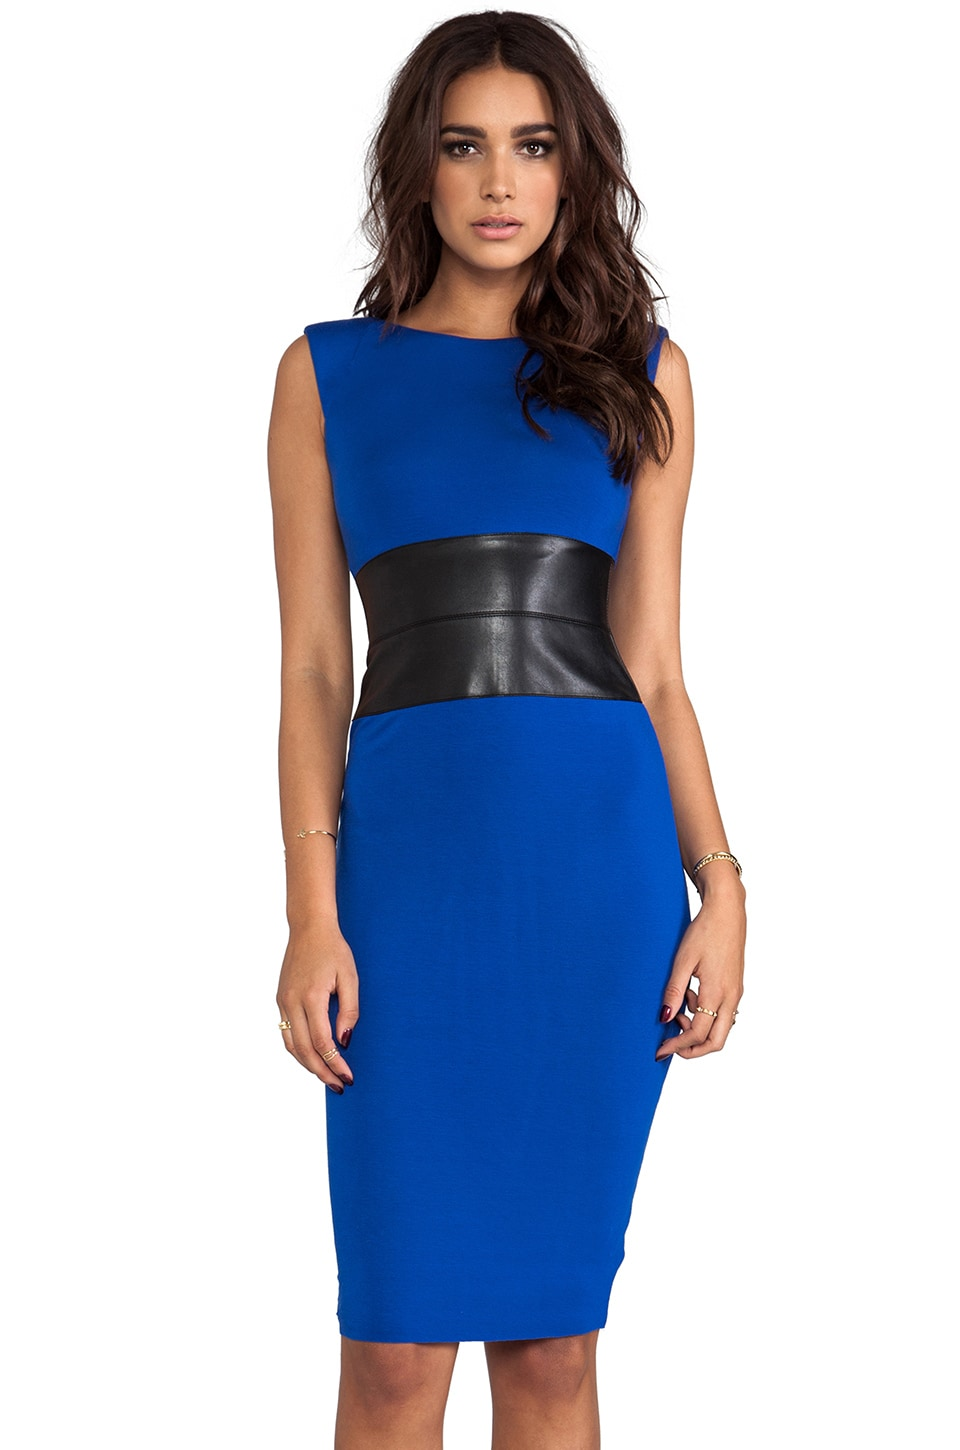 Bailey 44 Endurance Dress in Cobalt